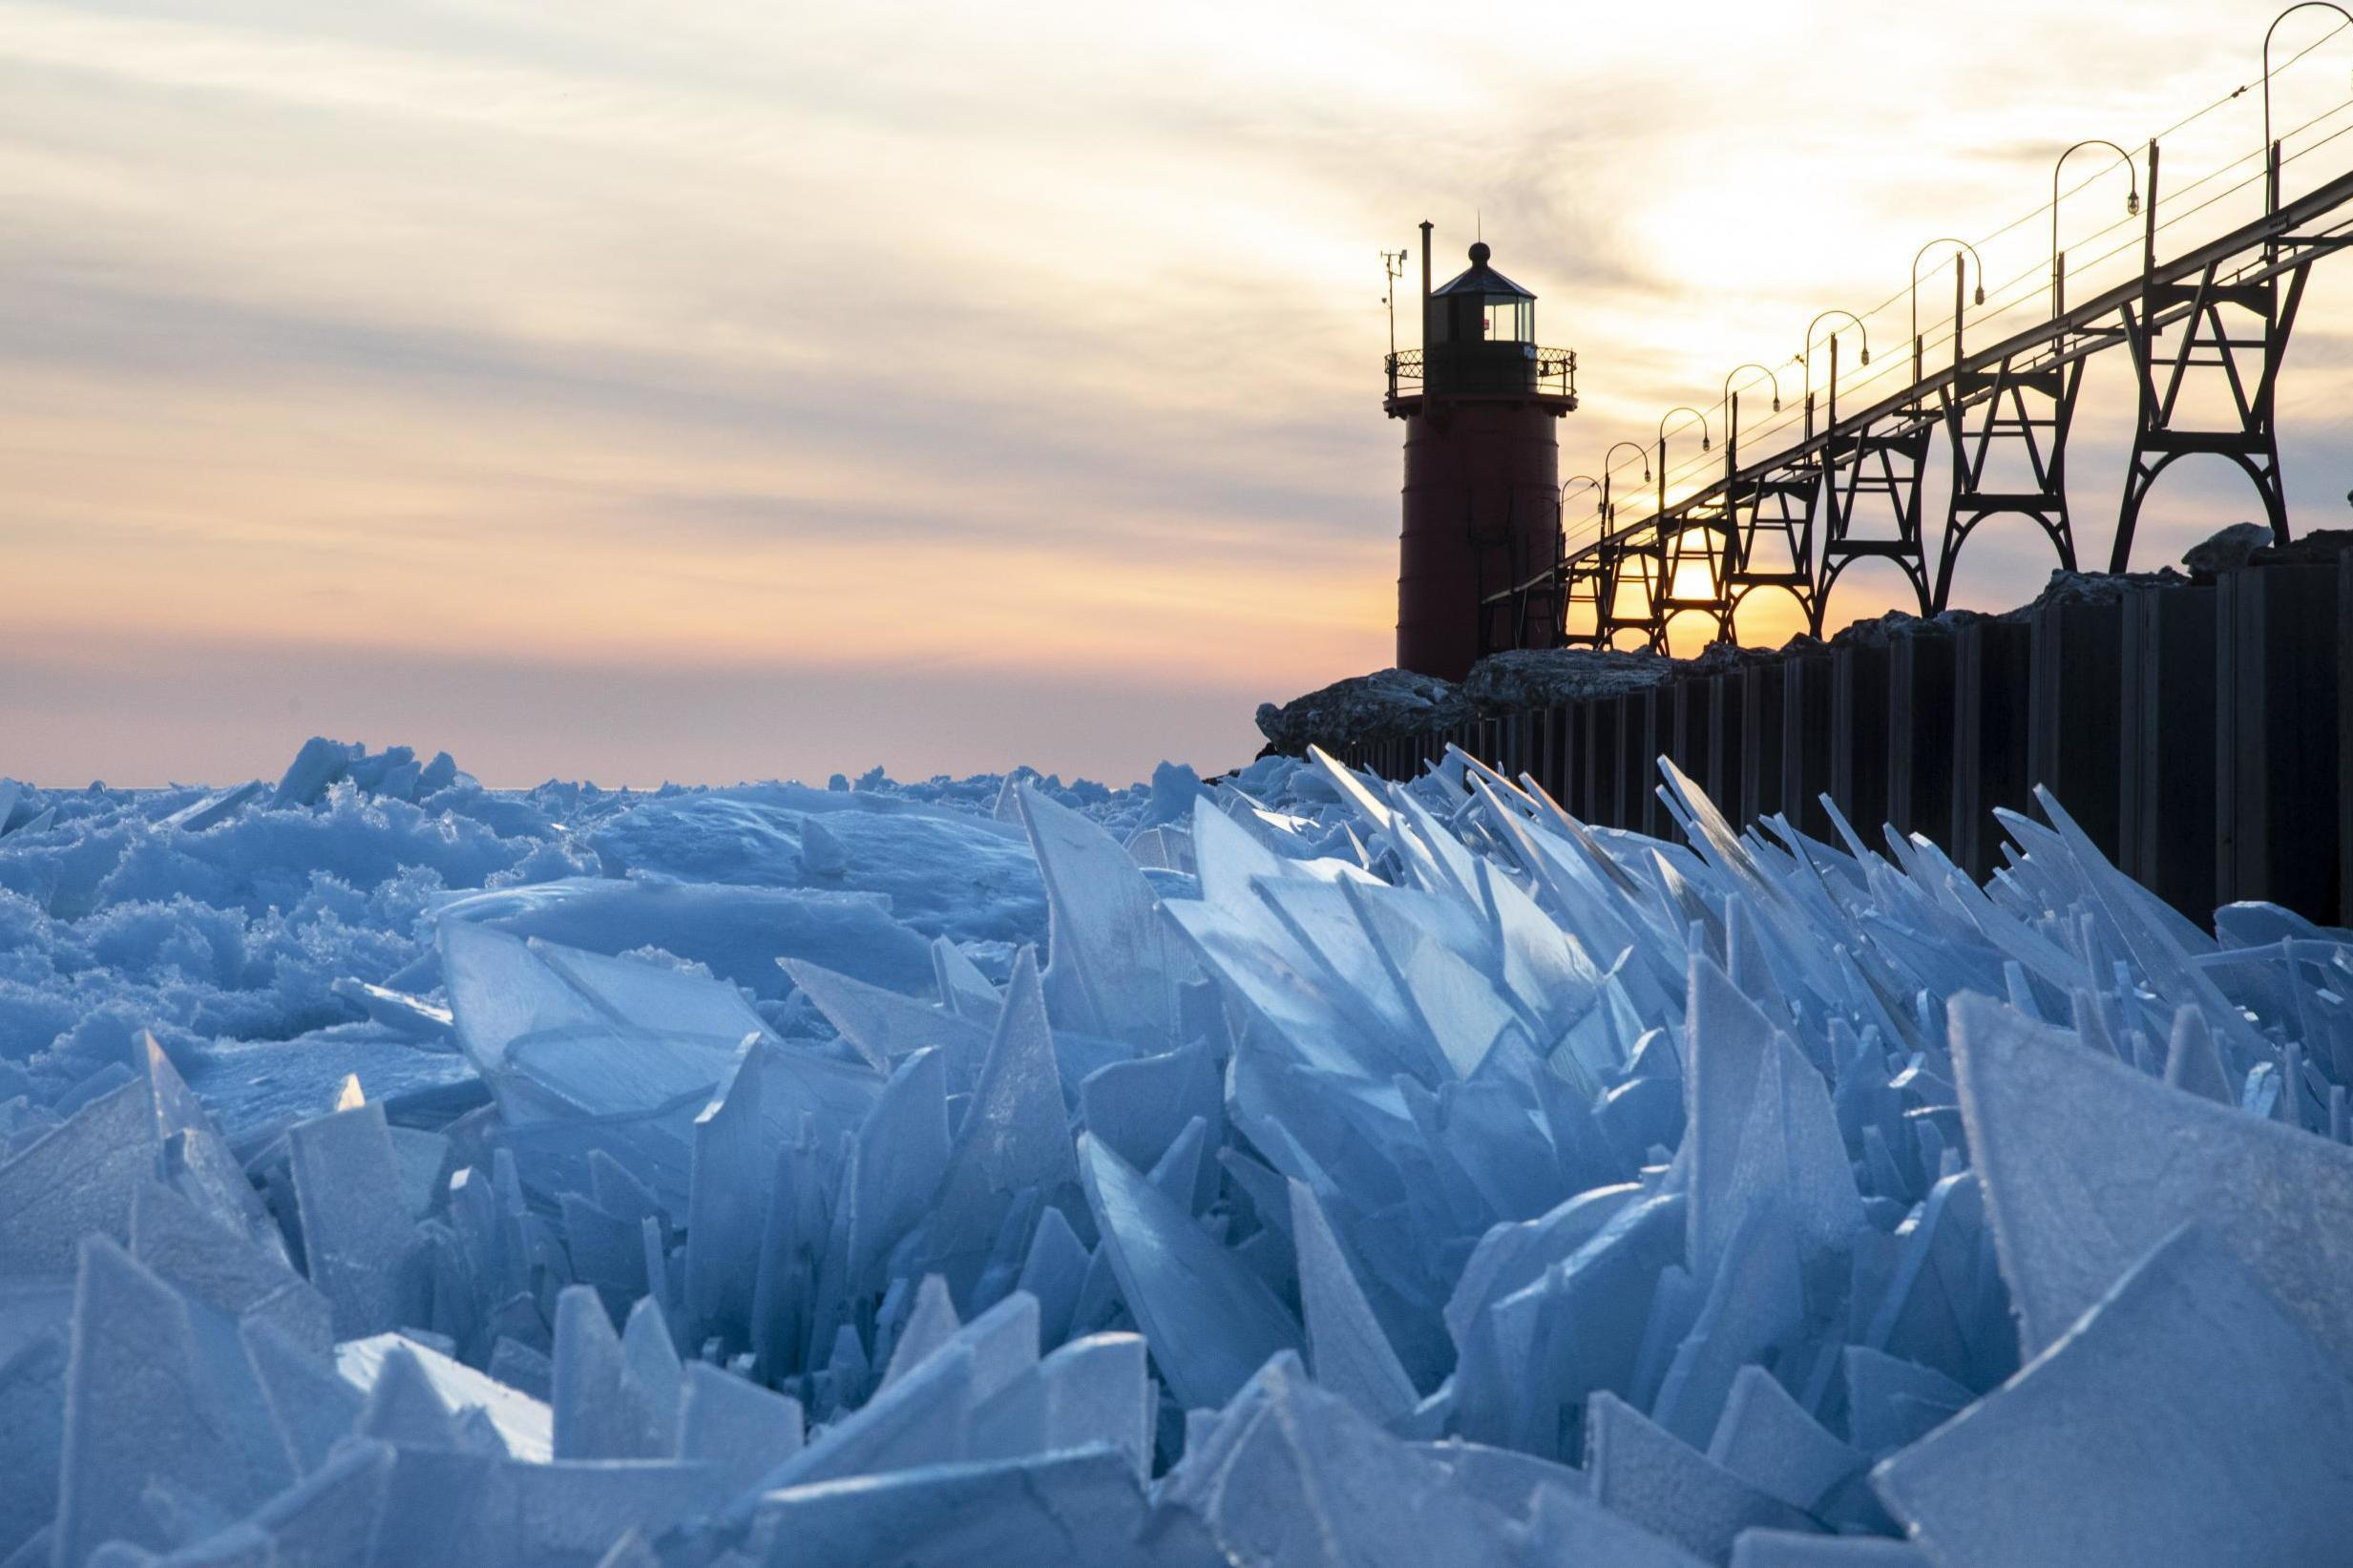 Lake Michigan is covered in shards of ice and it is mesmerising